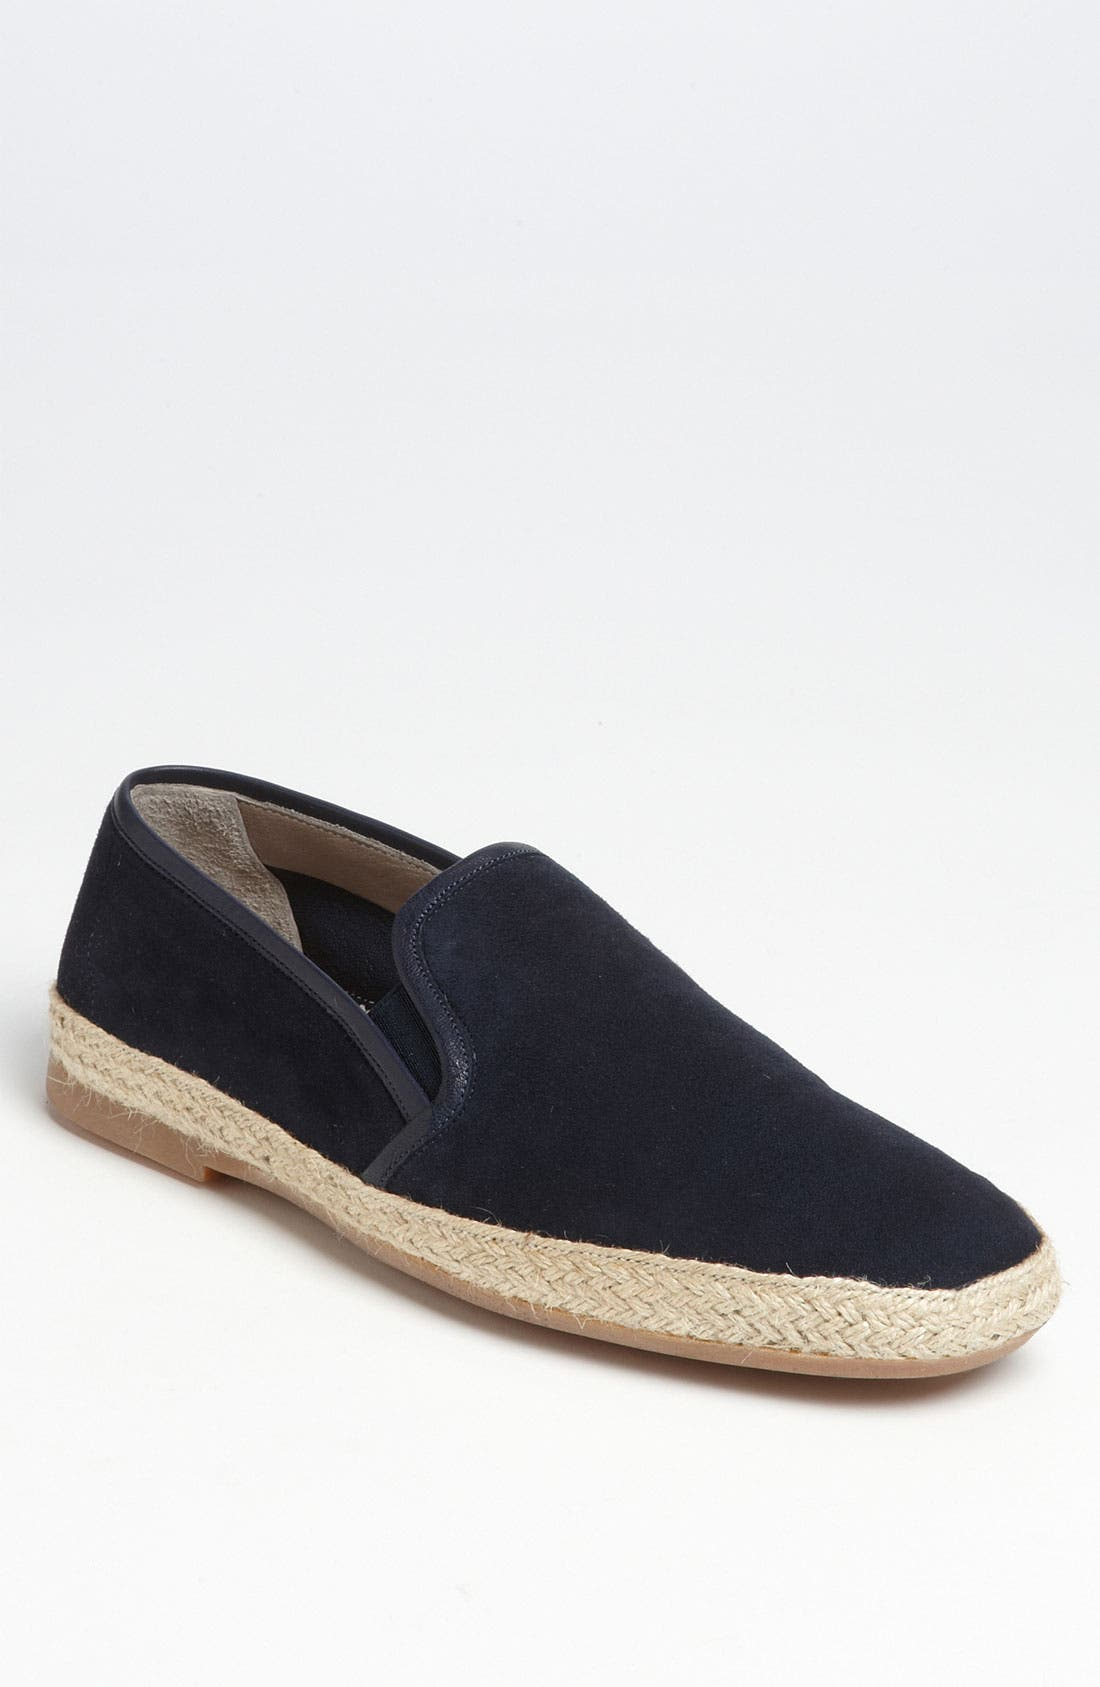 Main Image - To Boot New York 'Lopez' Slip-On